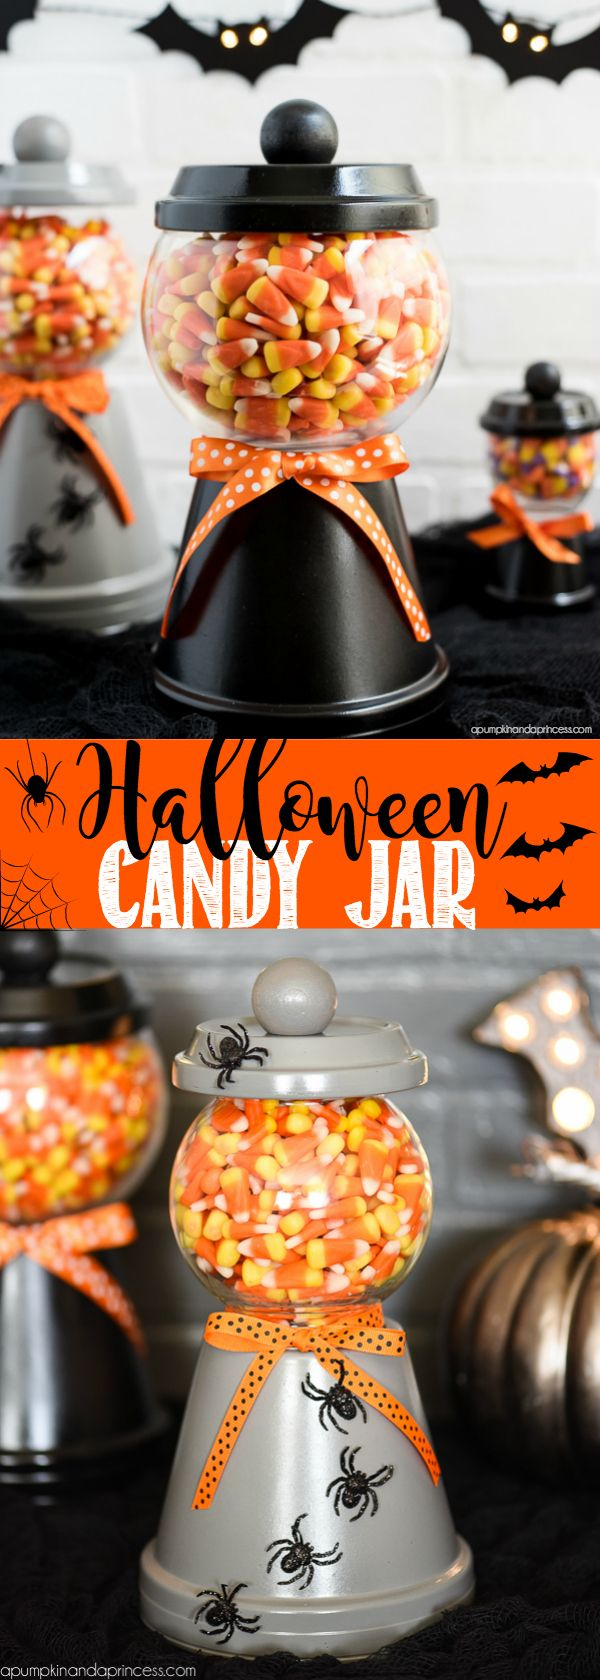 how to make a halloween candy jar made out of a terra cotta pot saucer a glass bowl and wooden knob perfect for decorating and displaying your favorite - Halloween Decoration Pictures